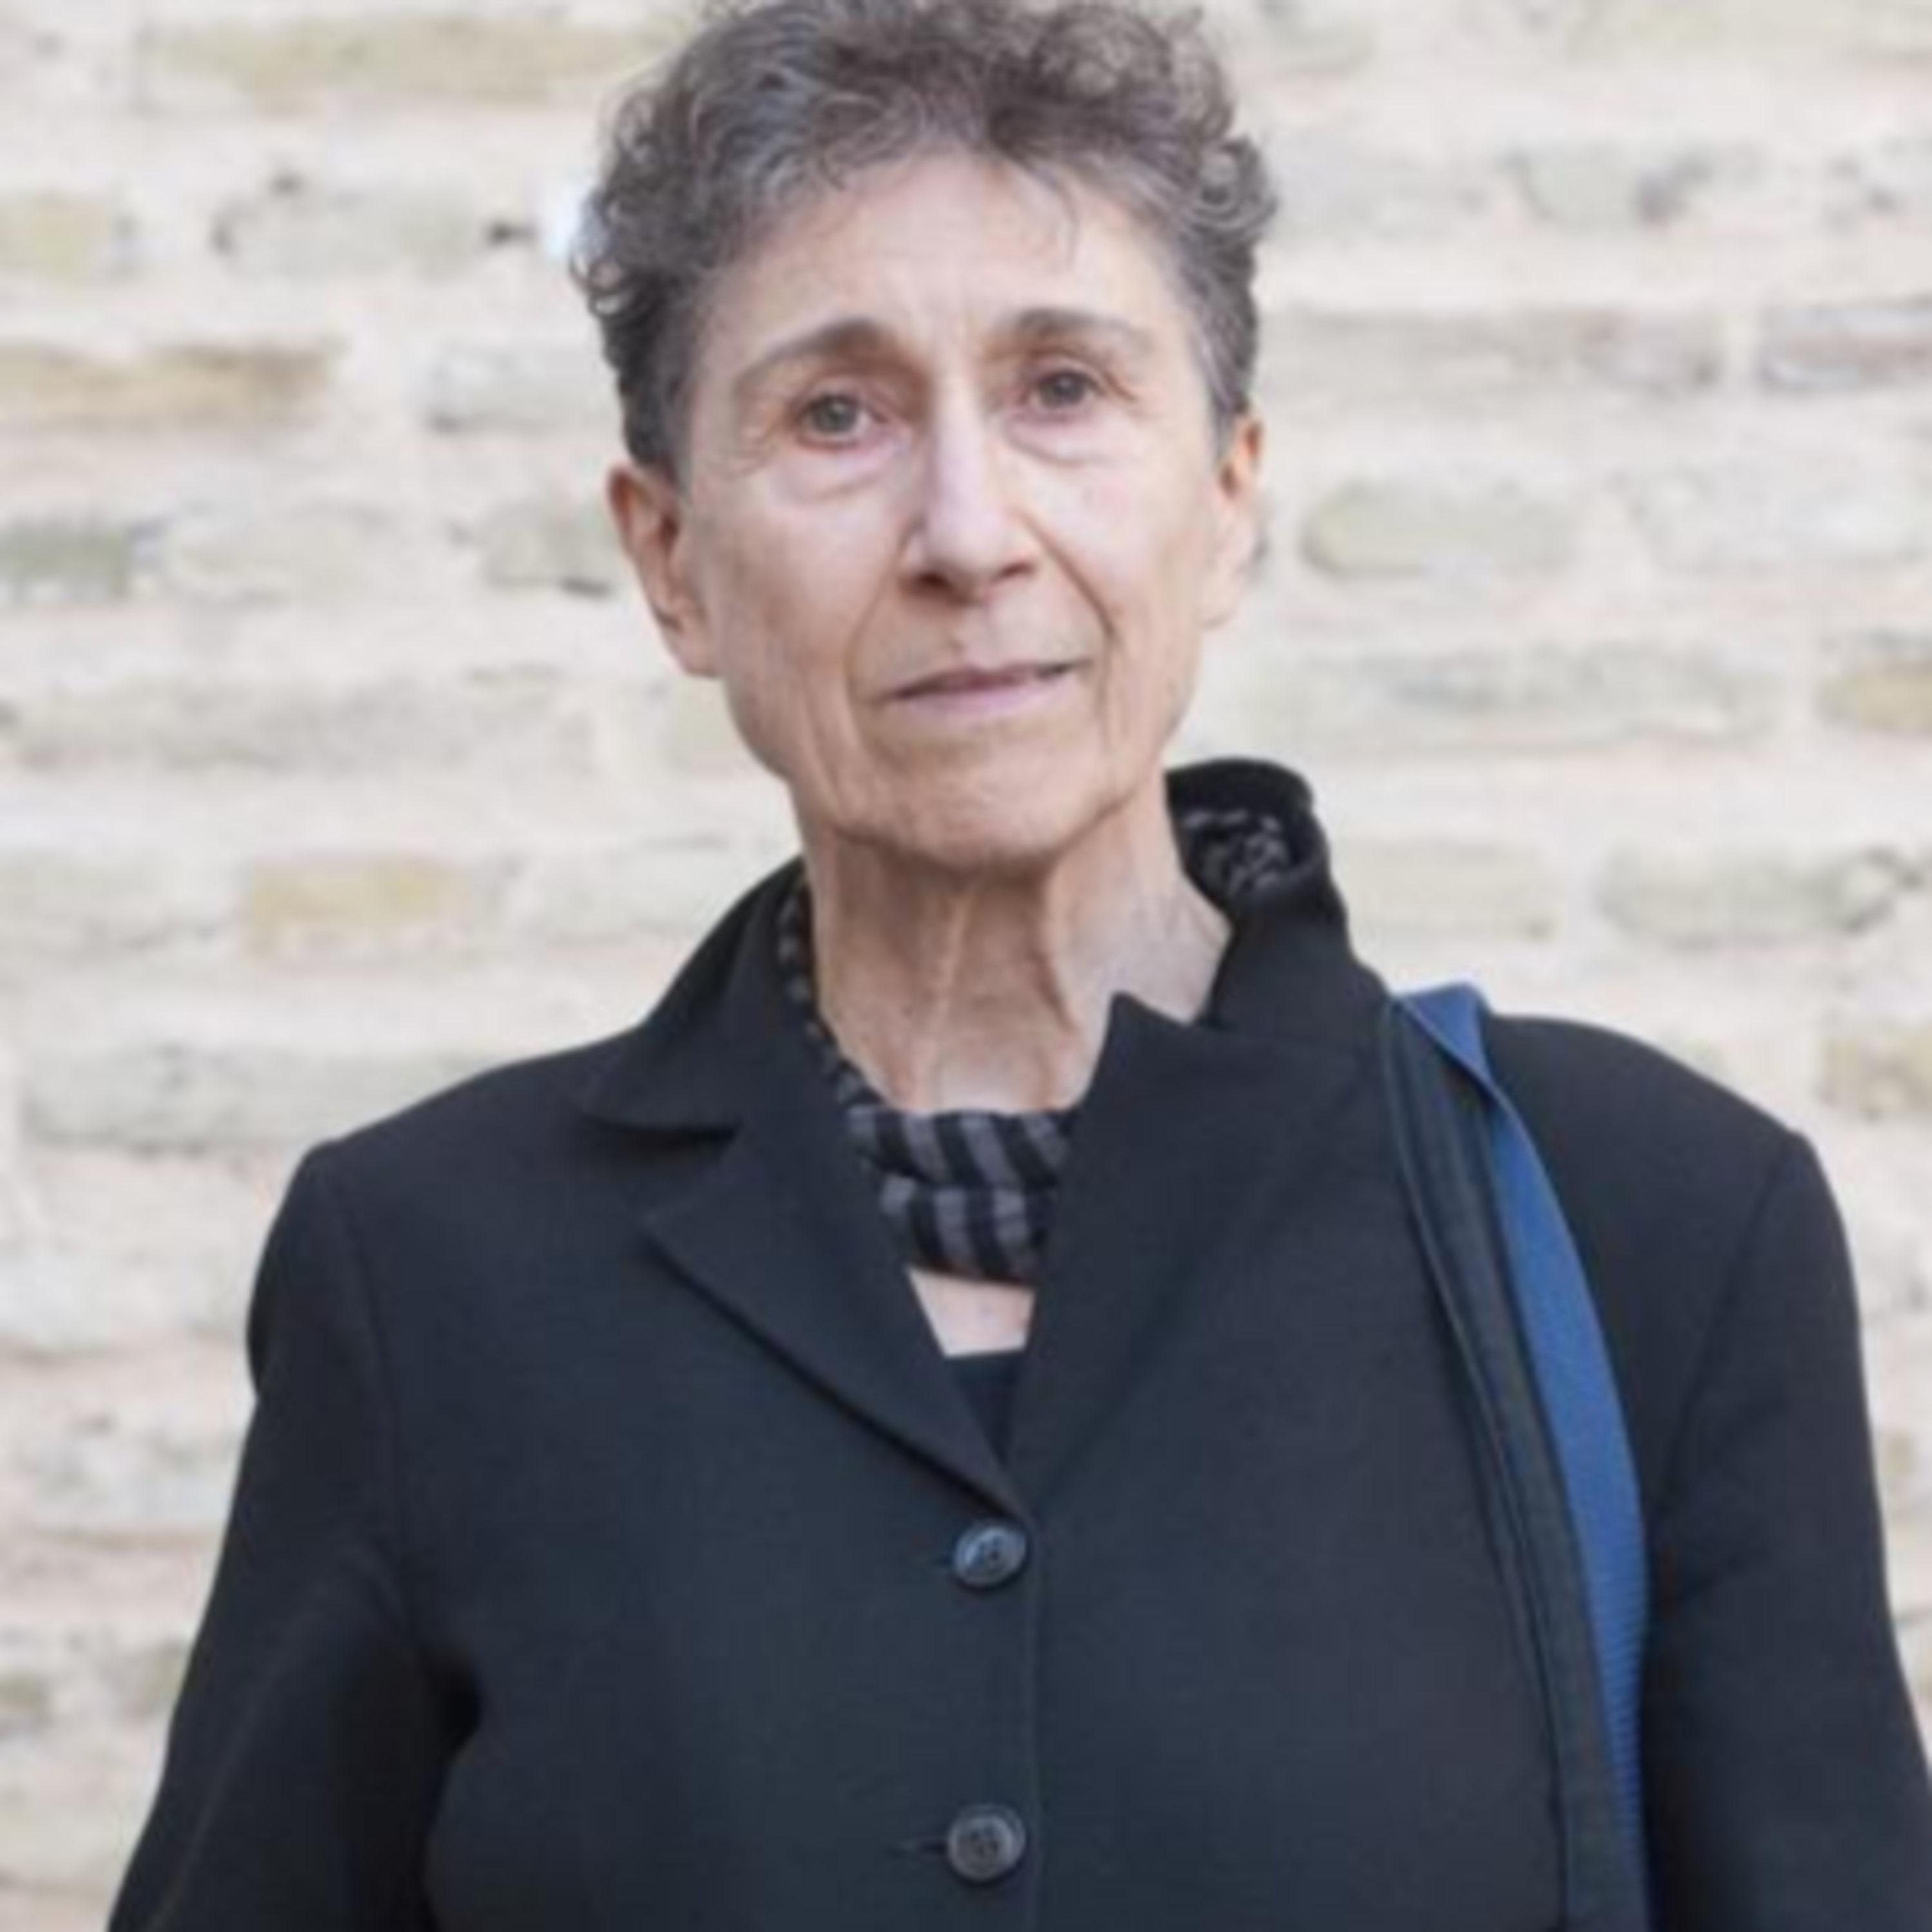 Witches, Witch-Hunting and Women (Part 2 - New Forms of Capital Accumulation and Witch-Hunting in Our Time) - Silvia Federici